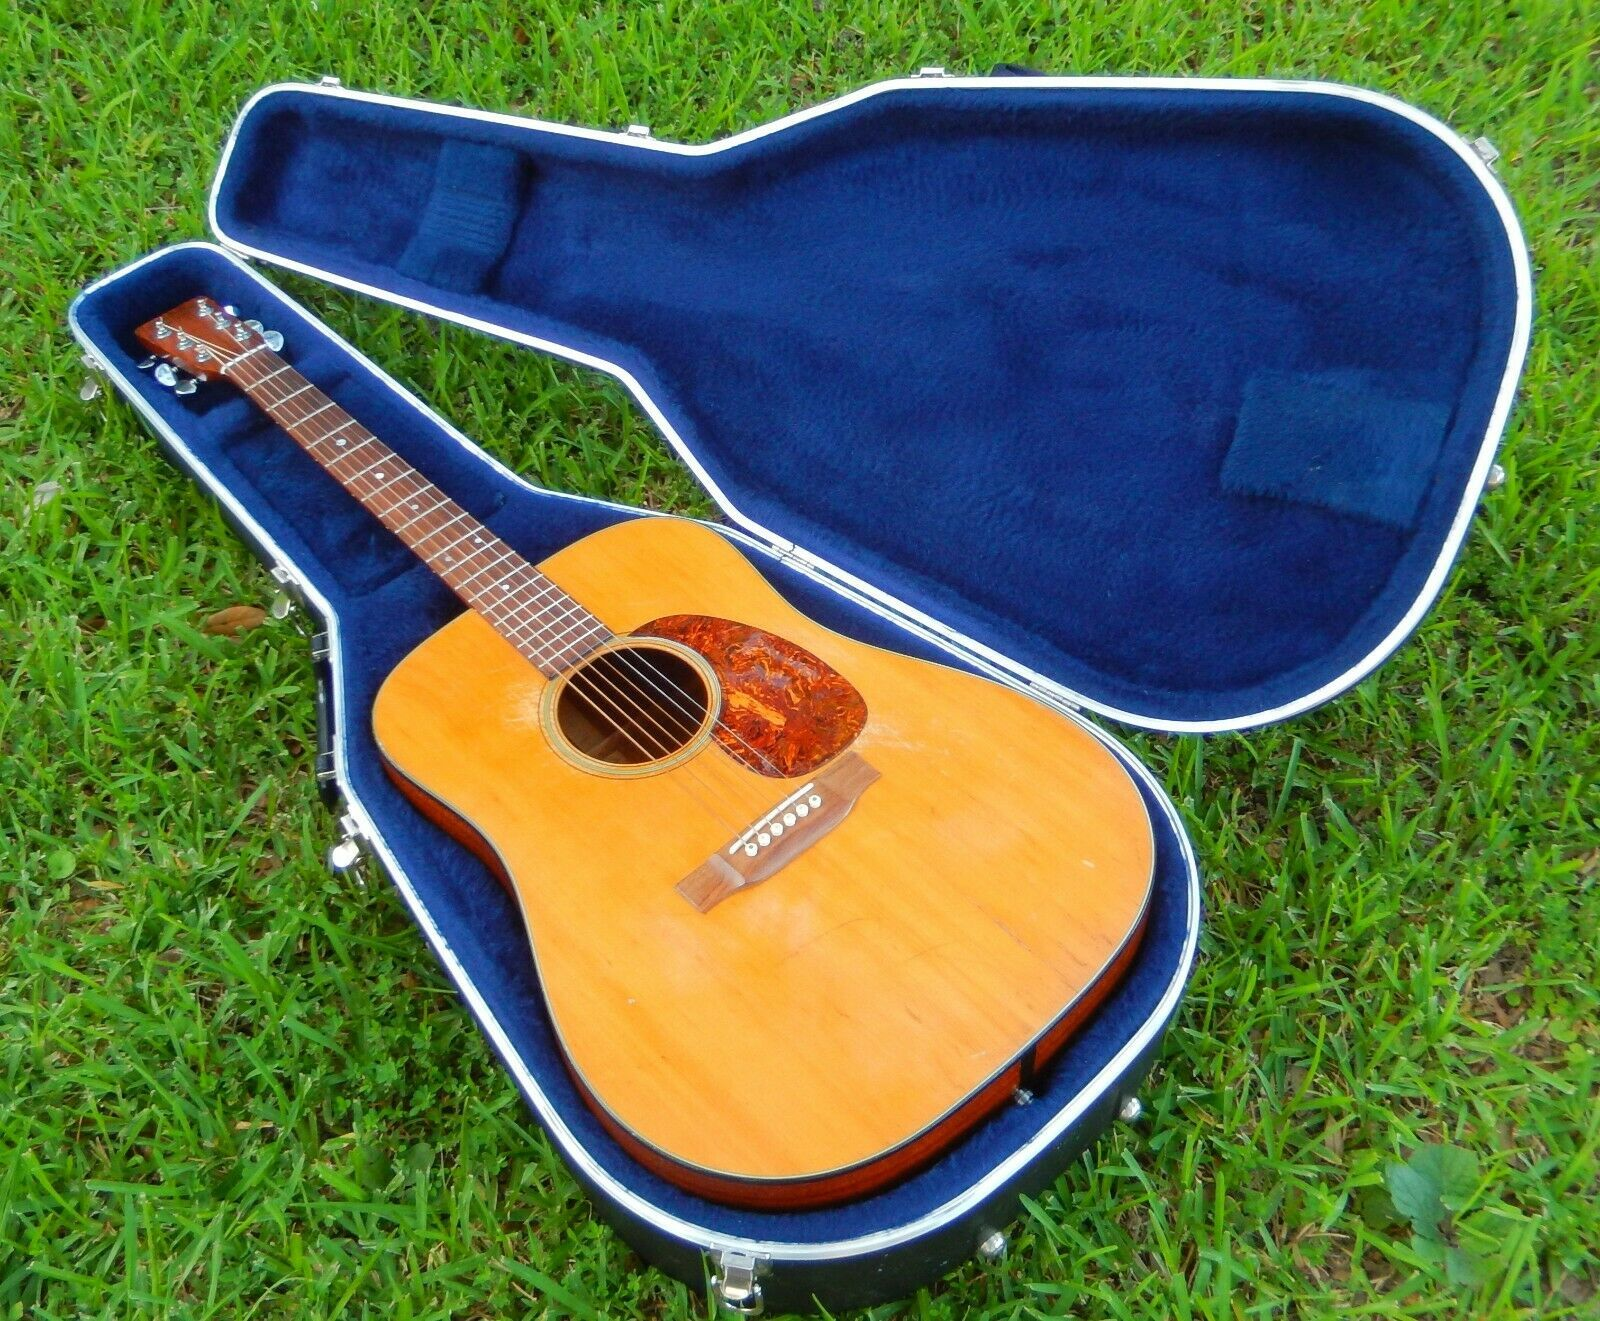 Vintage Martin D 18 Acoustic Guitar With Original Hard Case Reduced Price In 2020 Guitar Acoustic Guitar Acoustic